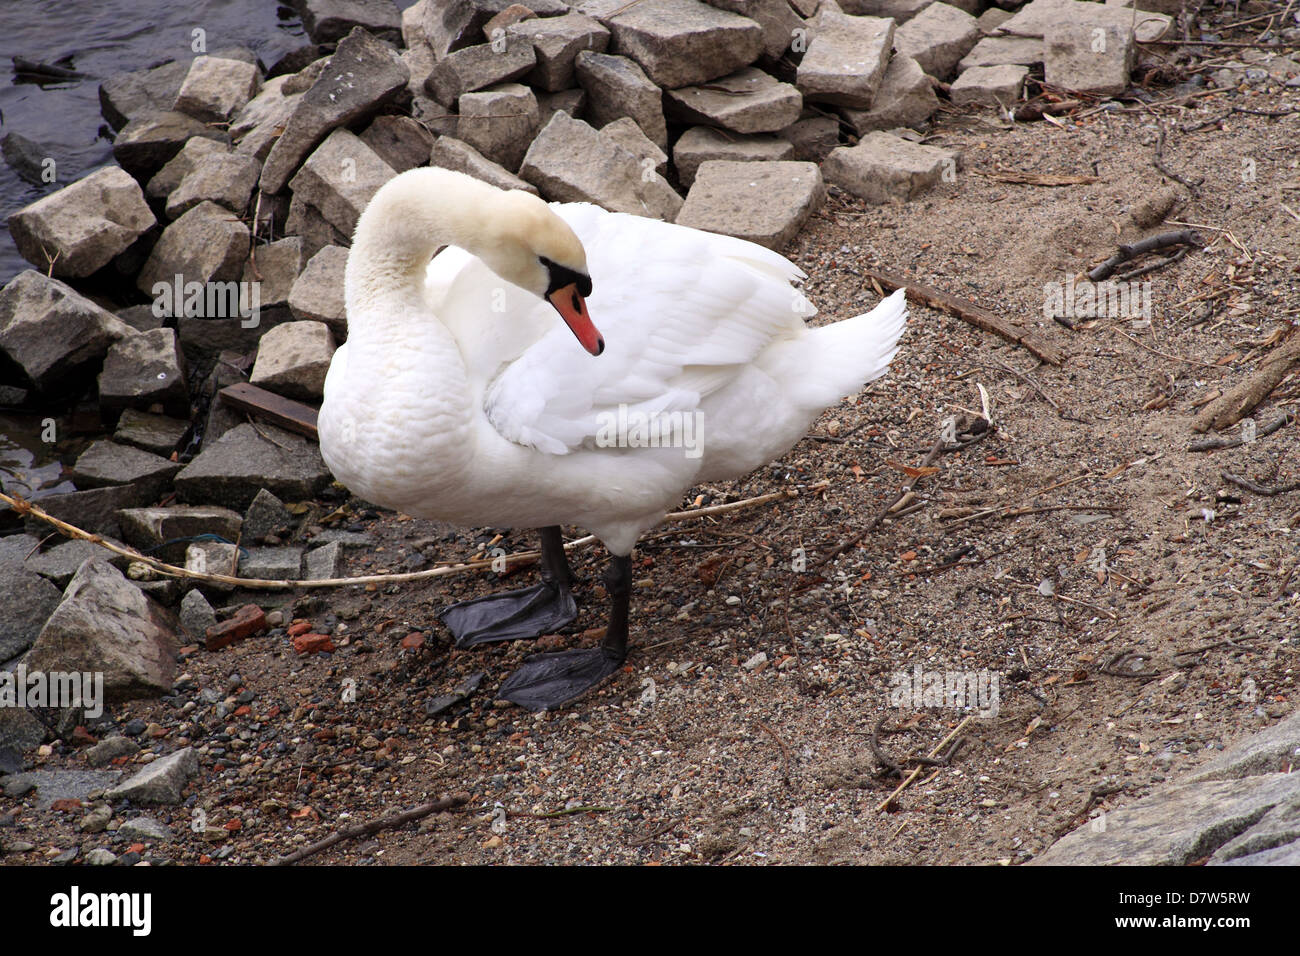 A white Swan standing on the Riverbanks at Moldau in Prague, behind is rocks and the river. - Stock Image